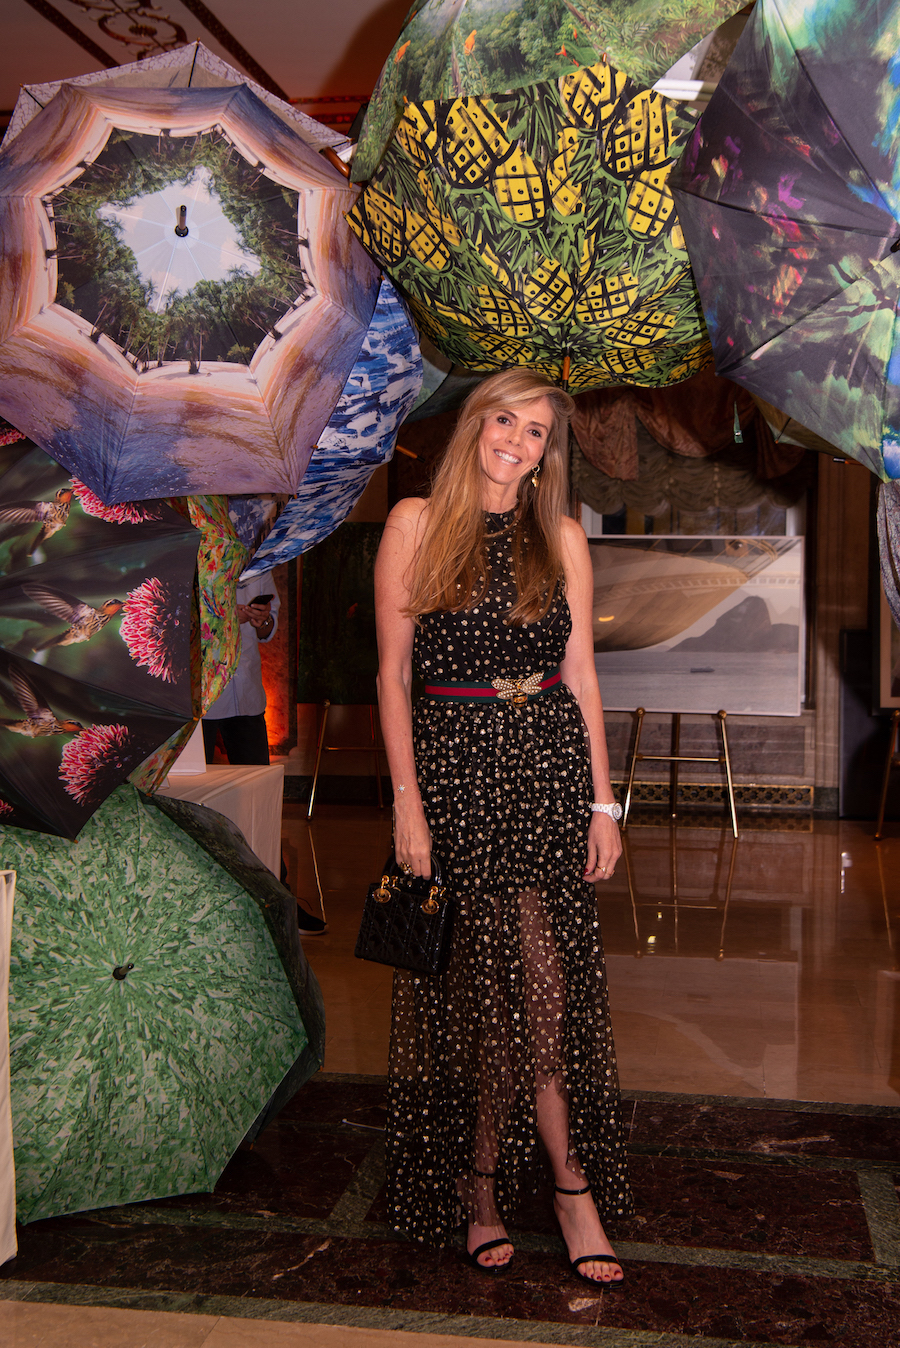 Sciacco Studio Umbrellas BrazilFoundation XVI Gala New York Celebrating the Amazon Plaza